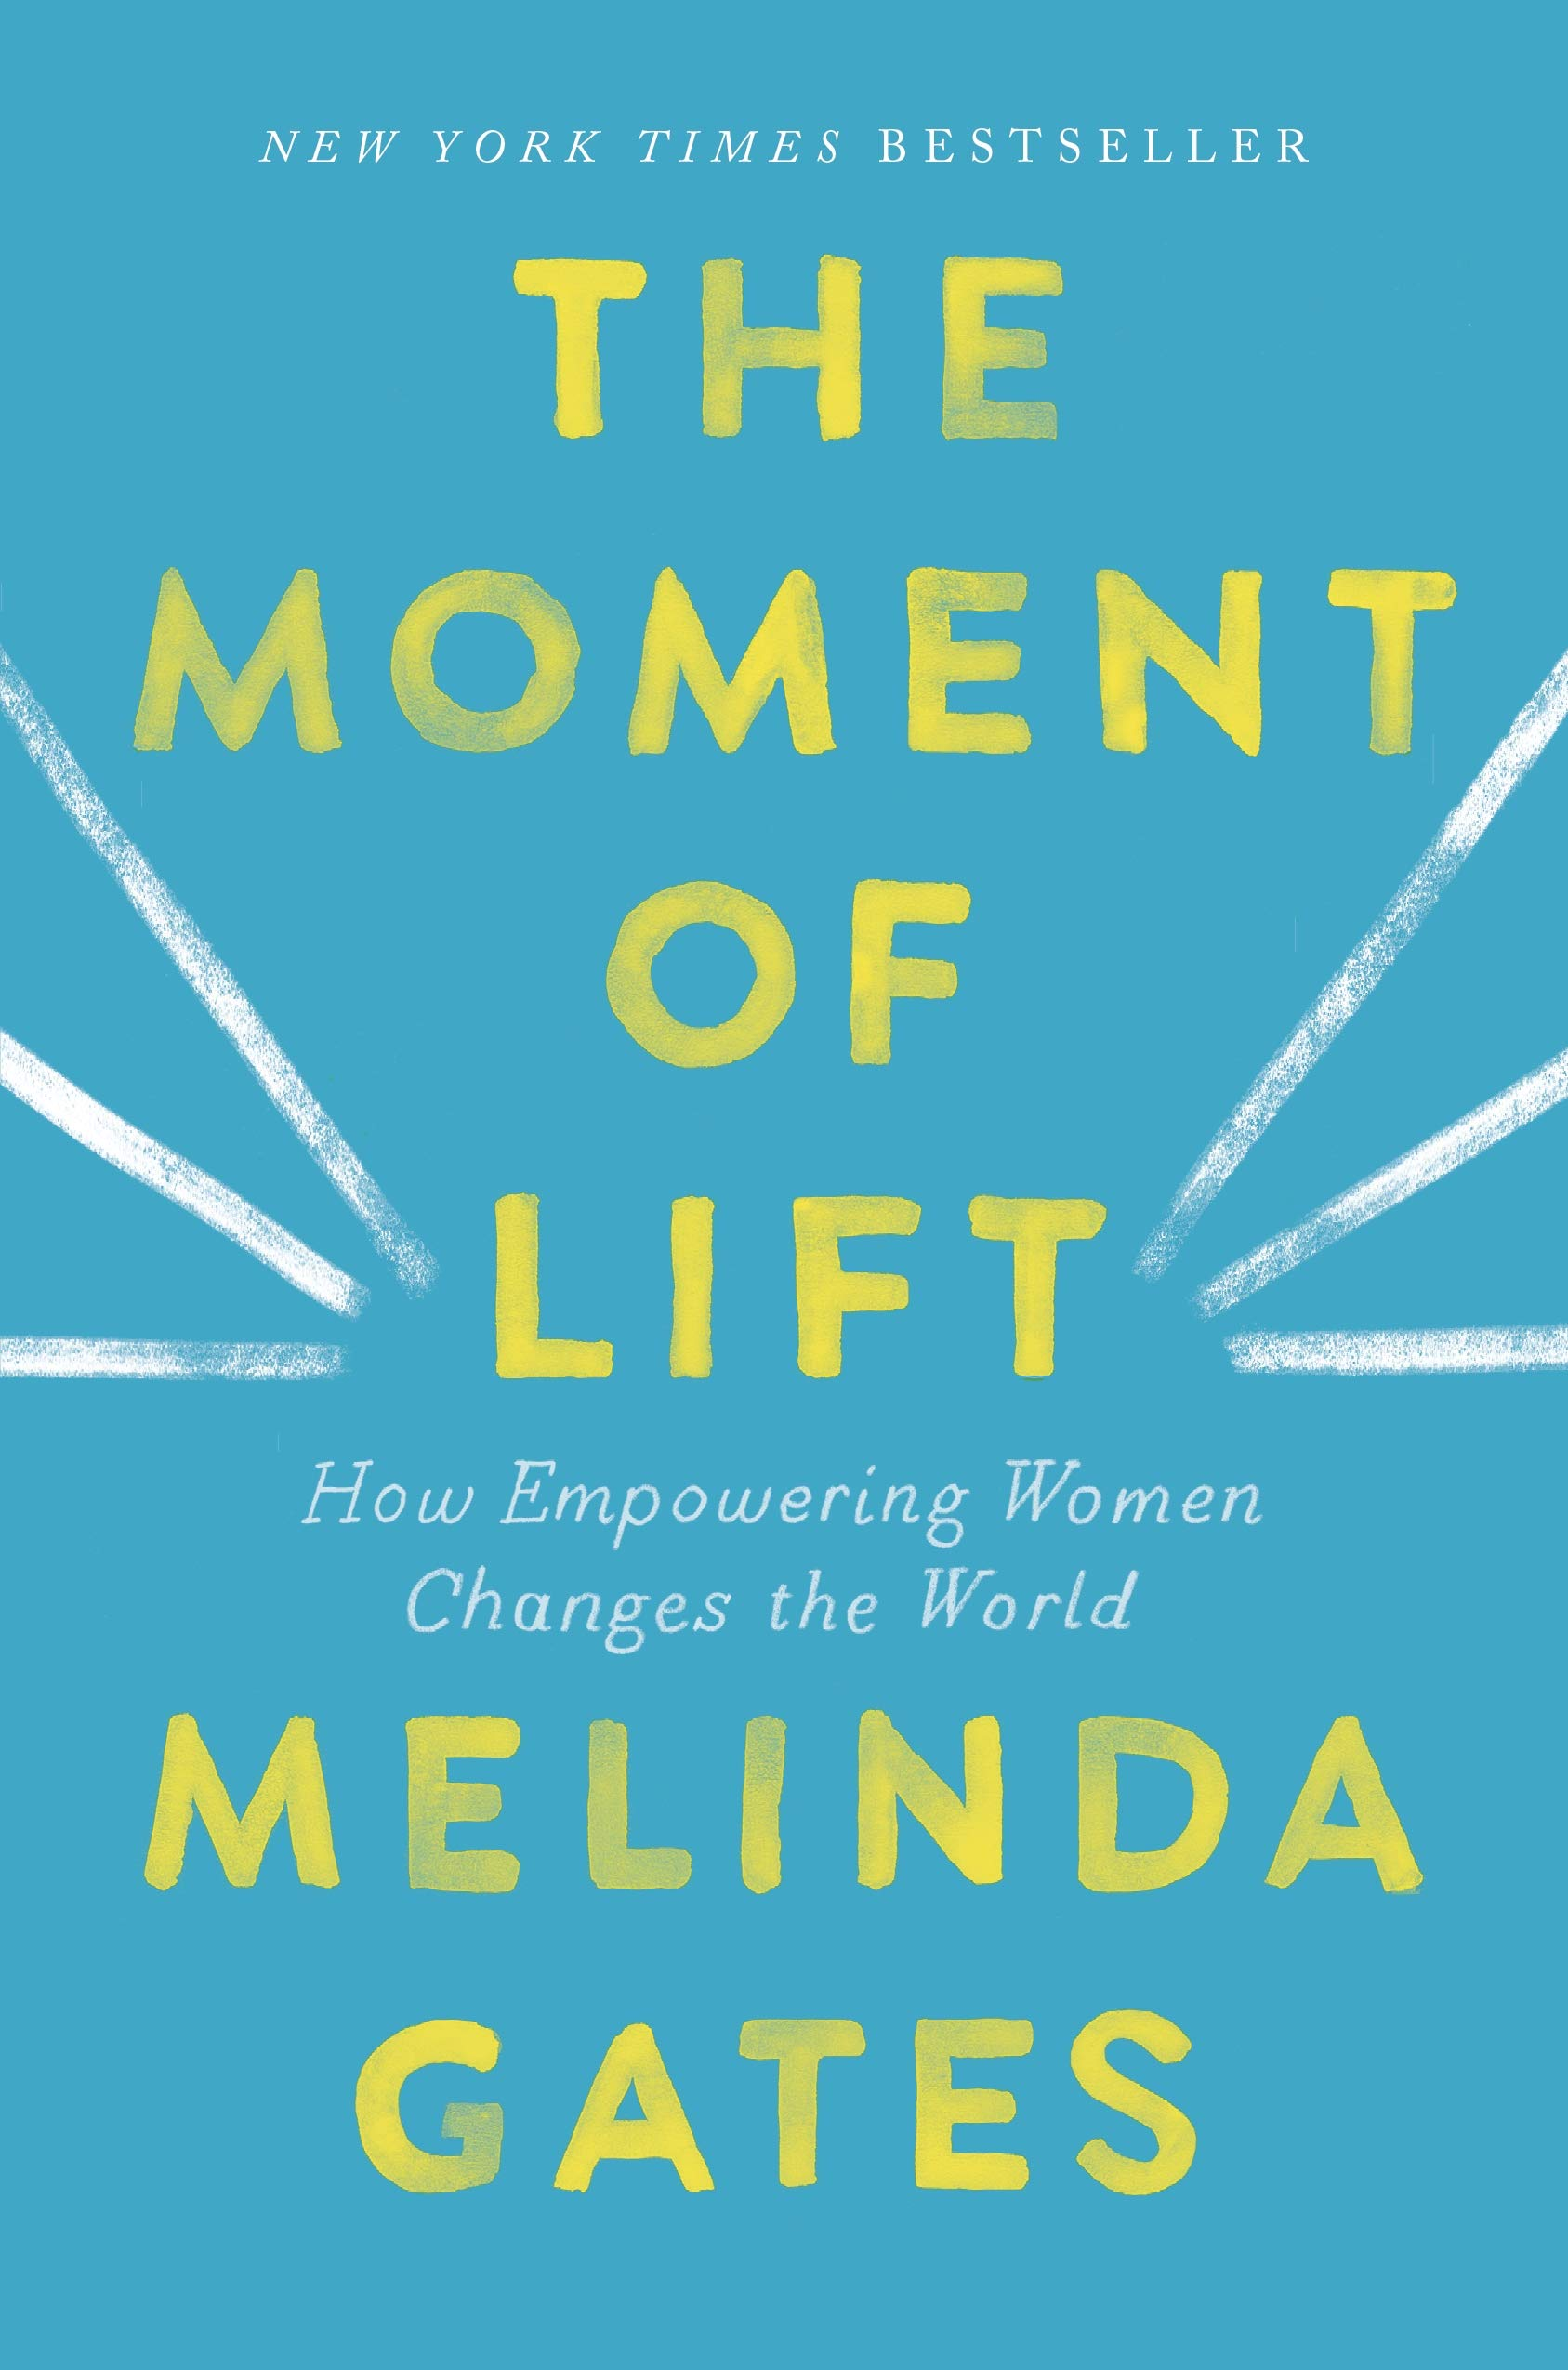 A review of  The Moment of Lift  by Melinda Gates, from Green Goose Ghostwriting.